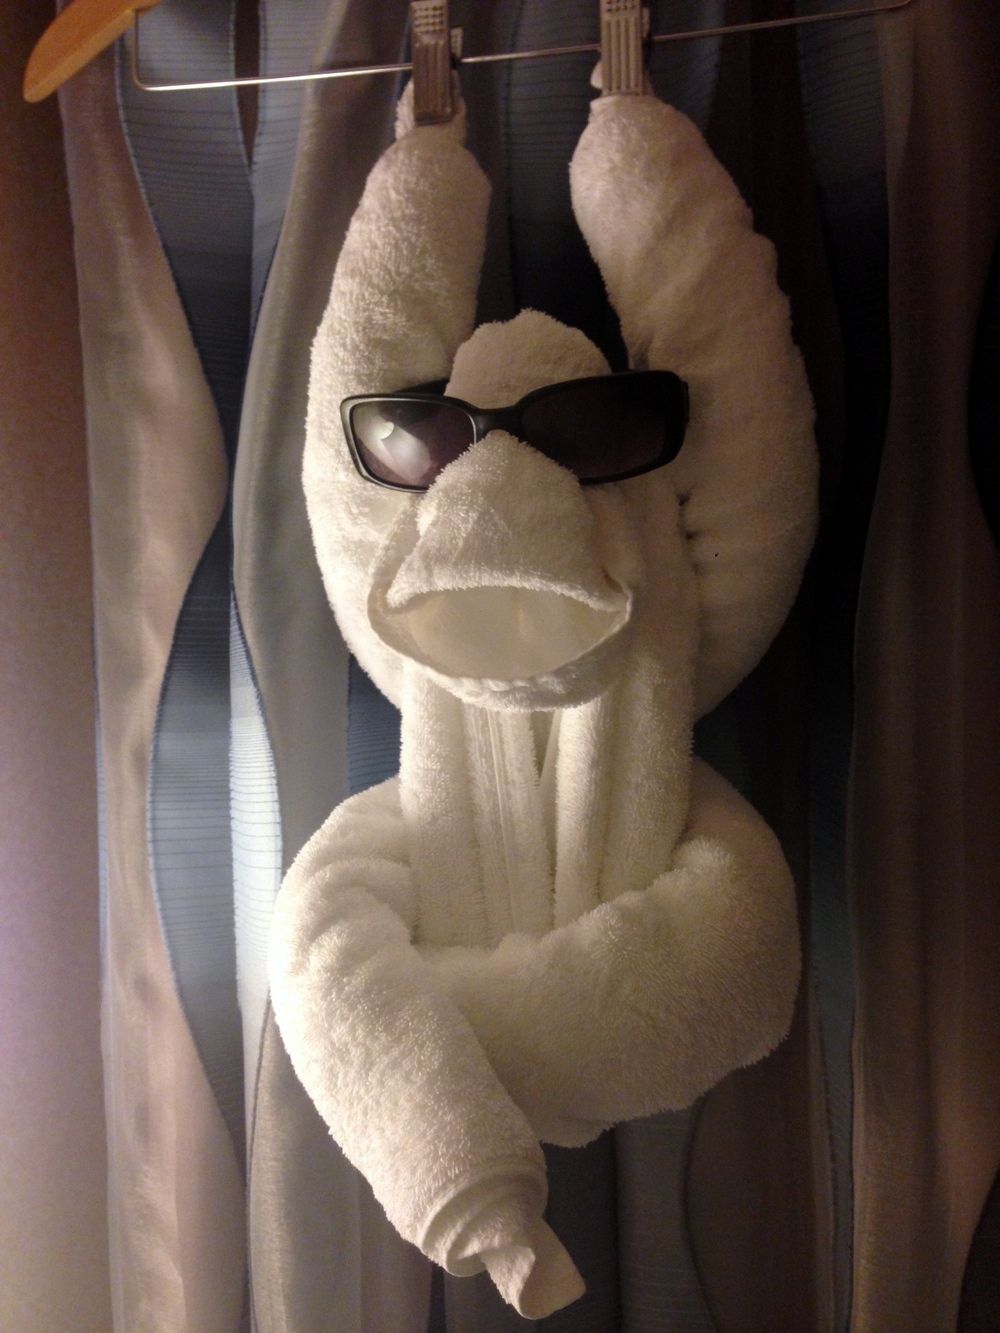 Othniel also made us this towel gorilla. We named him Bobo.